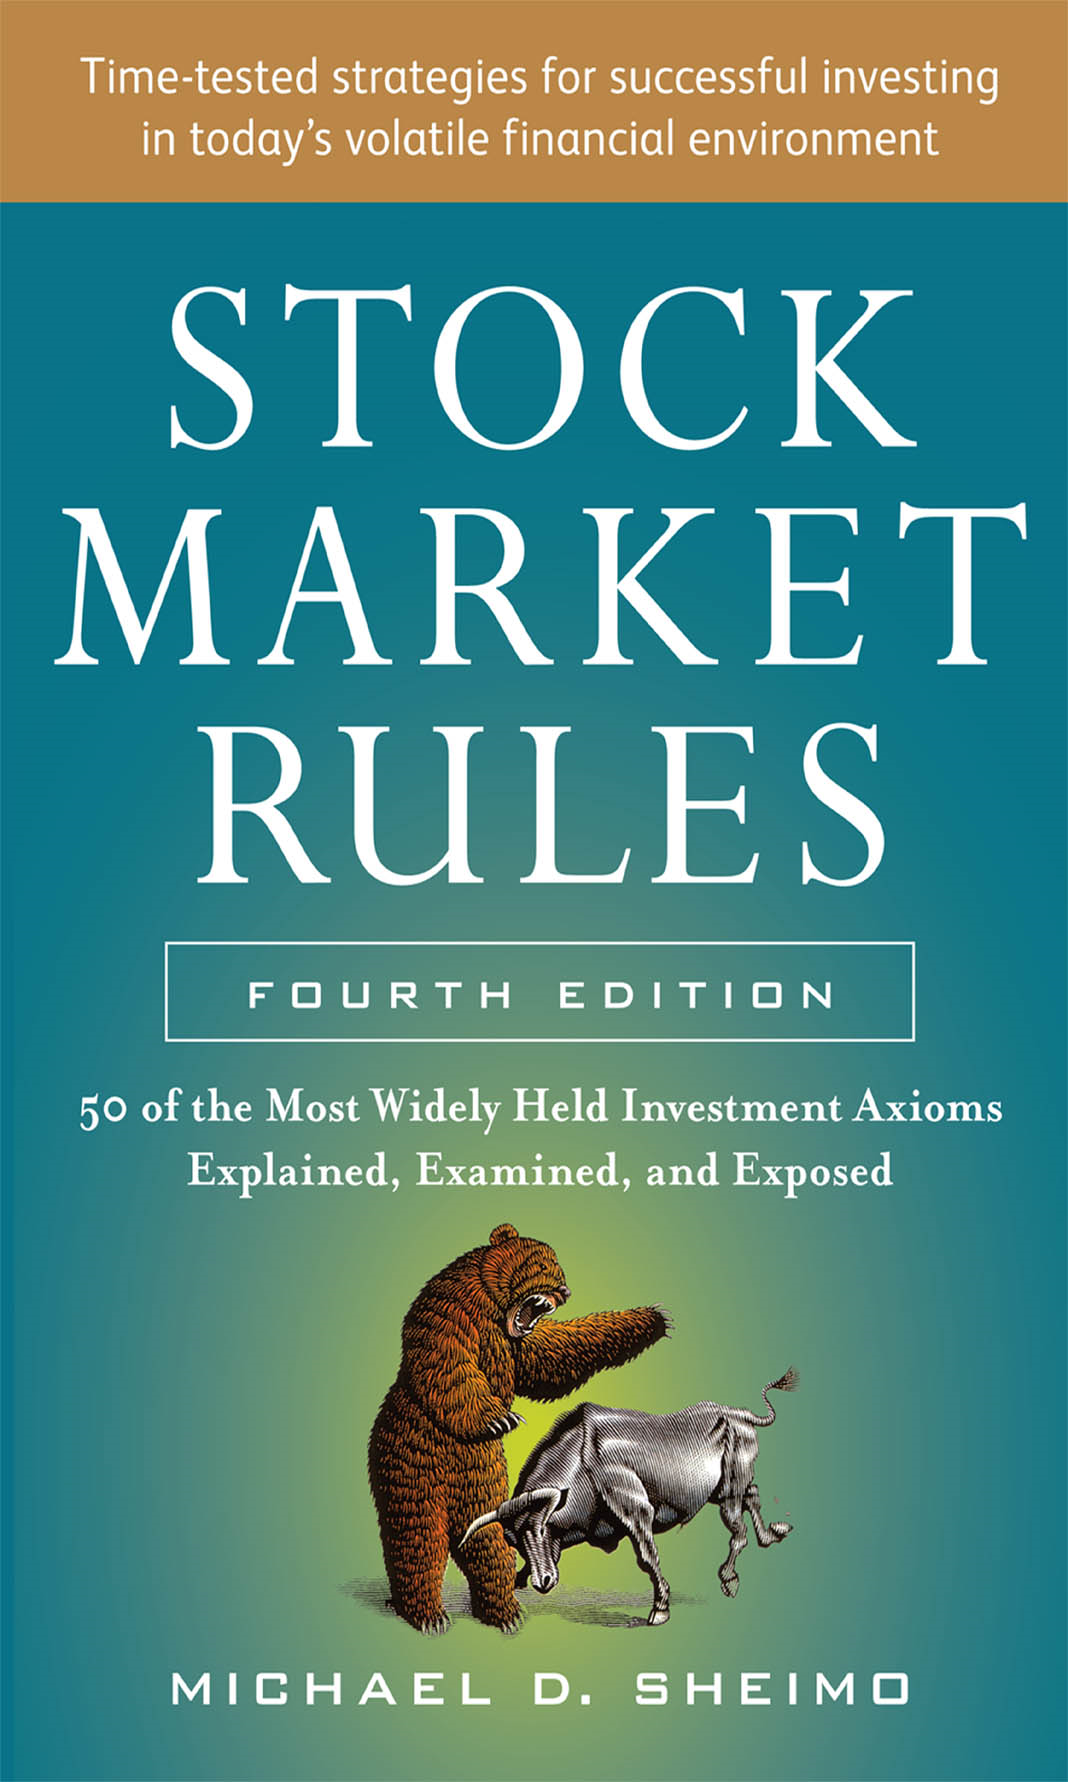 Stock Market Rules: The 50 Most Widely Held Investment Axioms Explained, Examined, and Exposed, Fourth Edition